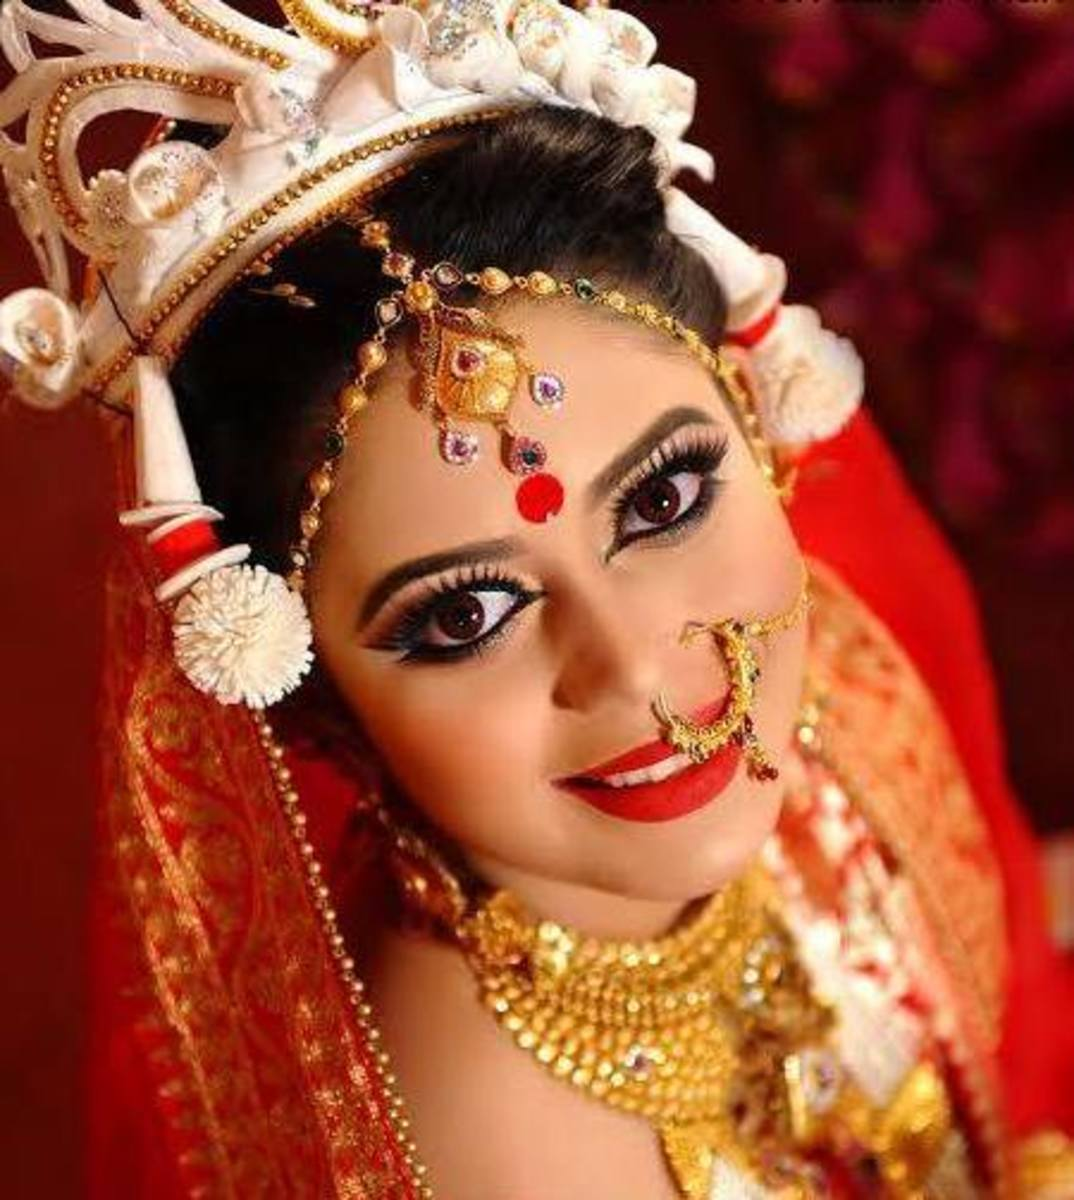 Gorgeous traditional look on a beautiful Hindu bride.